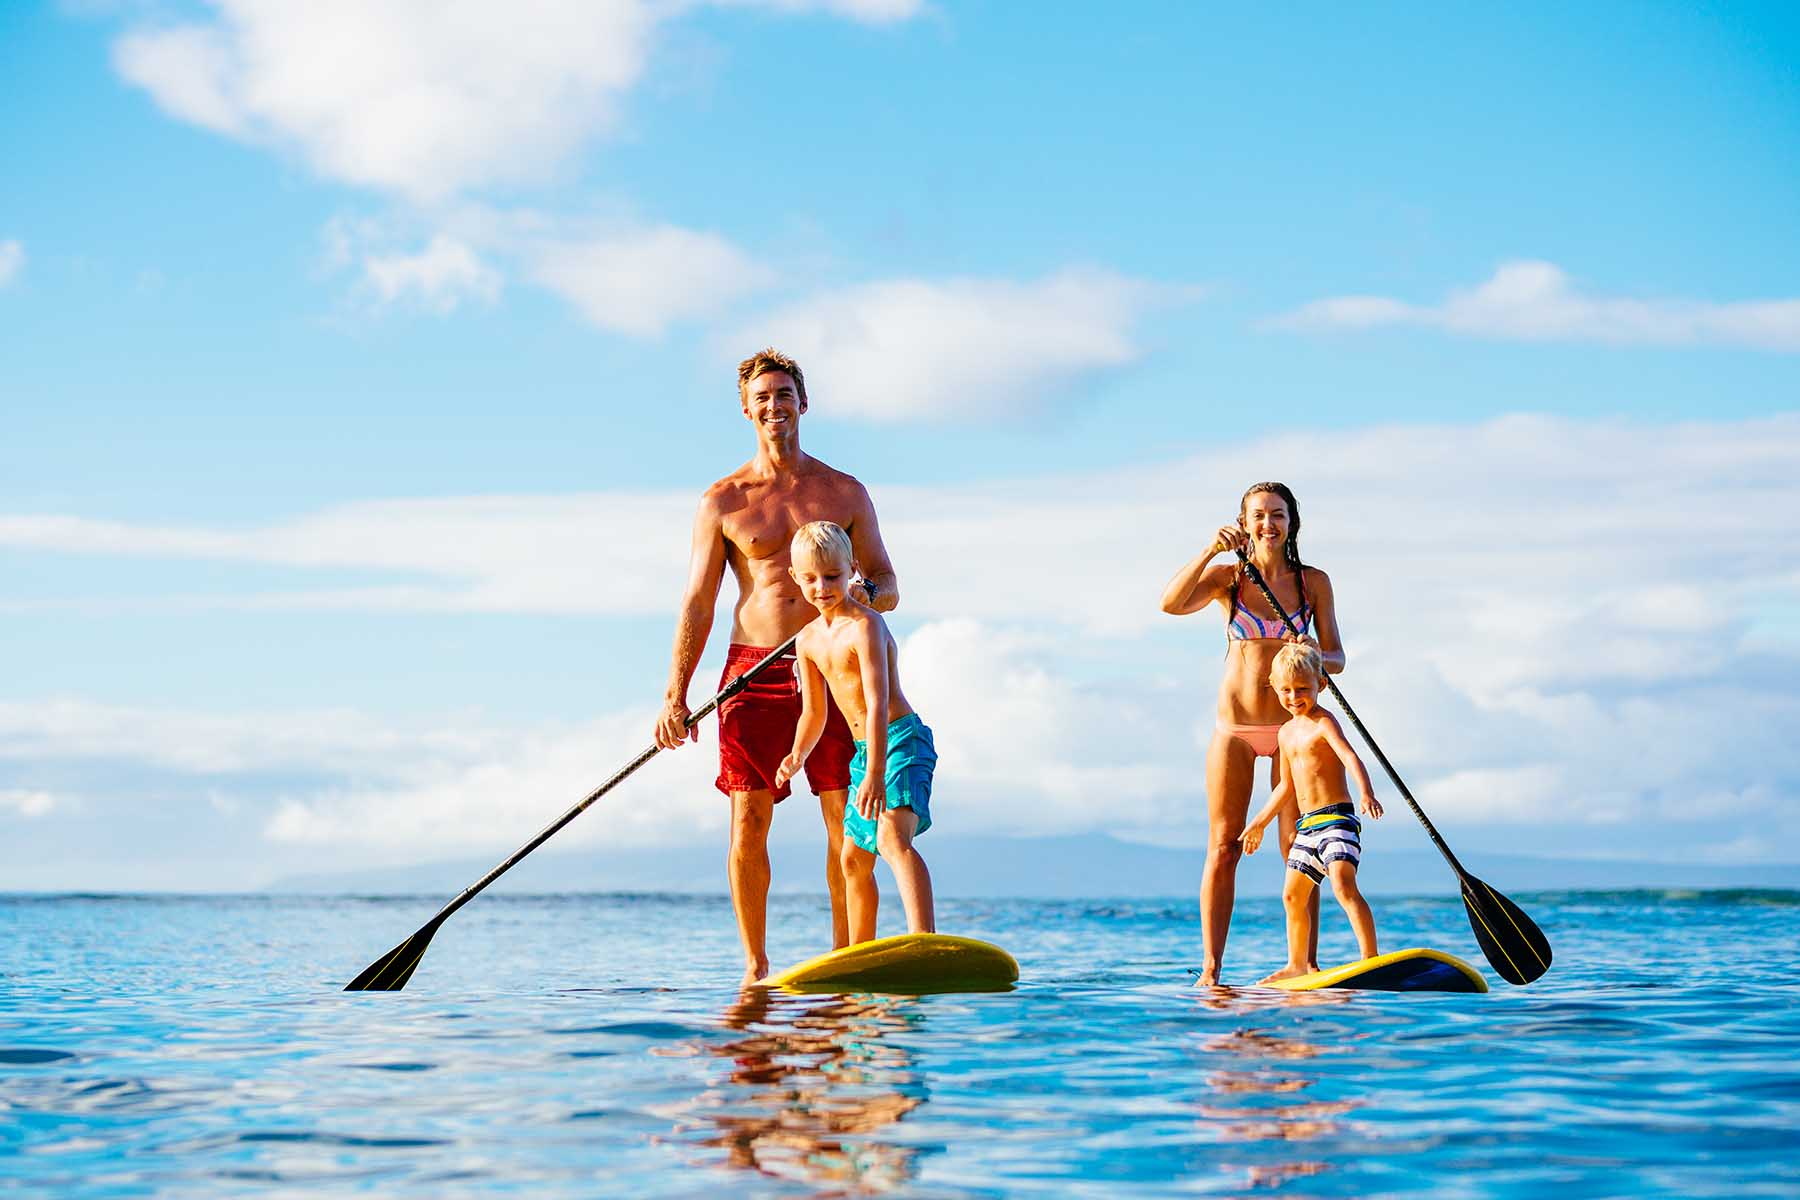 Parents with their kids enjoying stand up paddleboards